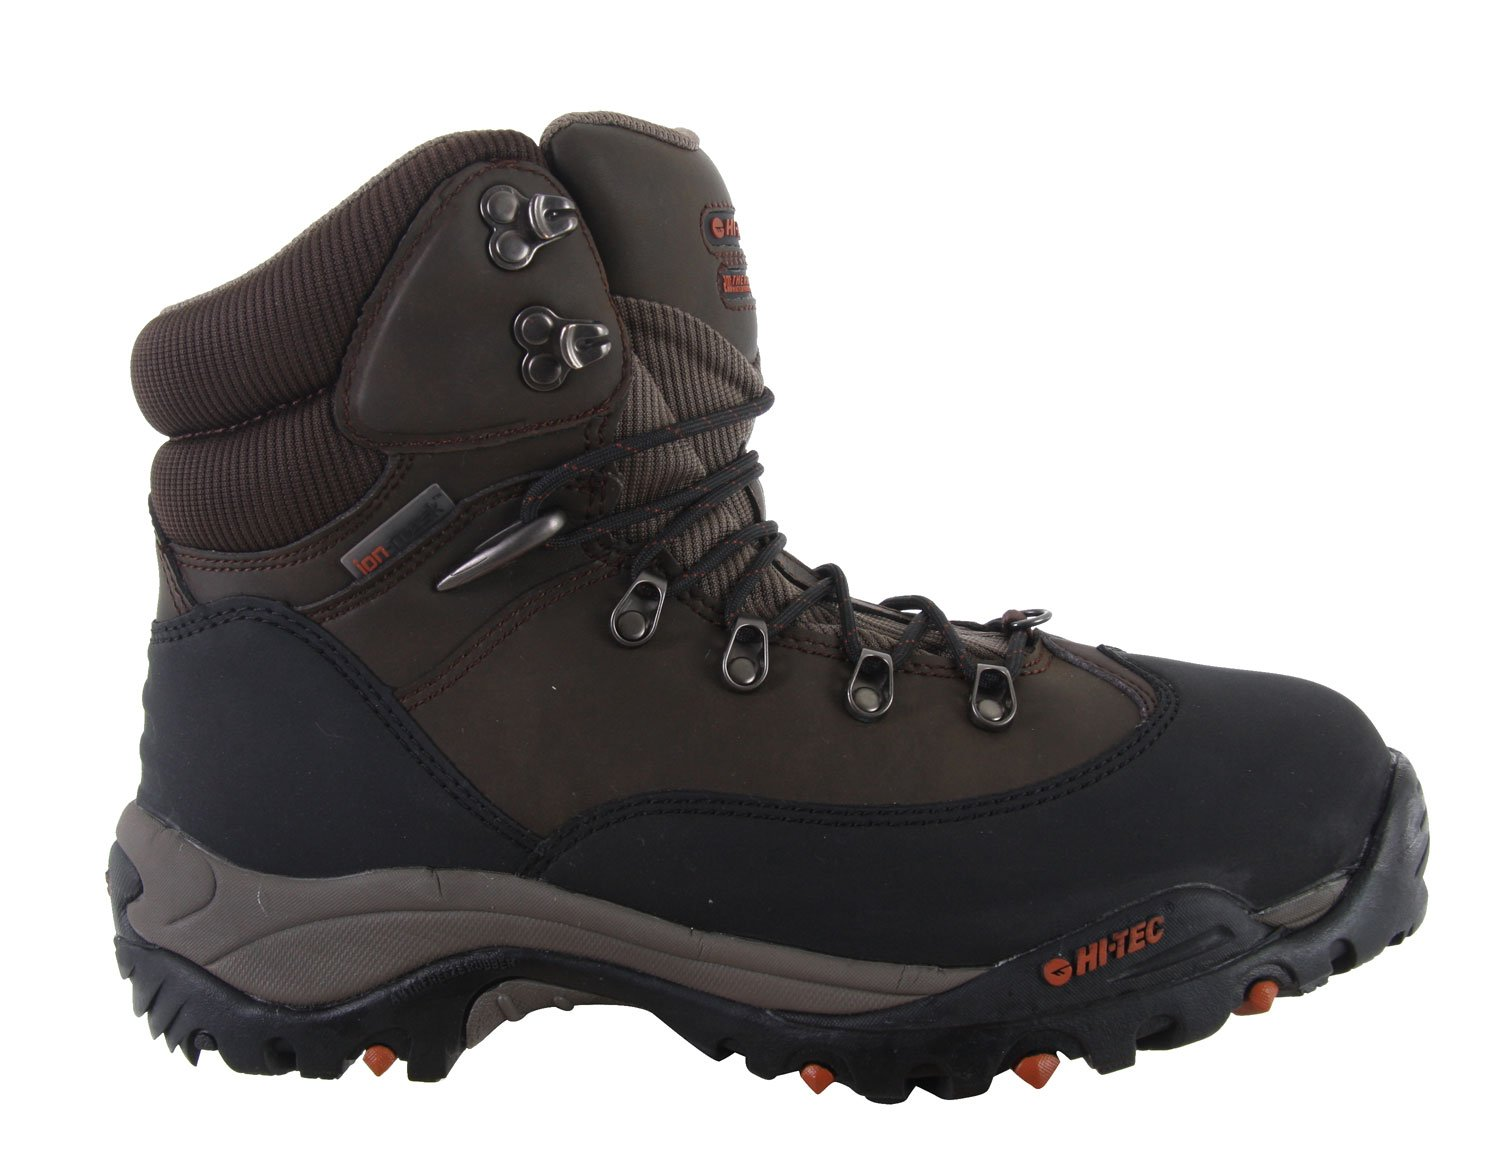 Camp and Hike Support is a must when you are climbing up the side of a mountain or jogging up and down trails. The Hitec Yeti 2 200 casual boots make you feel like a mountaineer with their durable molded construction and aggressive winter traction perfect for traipsing through freezing snow. A comfortable memory foam sock liner cushions your dogs so they don't bark at you by the end of a long day out in the wild. Waterproof and insulated, these boots can take anything you throw at 'em.Key Features of the Hitec Yeti 2 200 Casual Boots: Microfiber And Nylon Upper 200G Thermolite Insulation Thermo-Dri@ Waterproof And Insulated Systems Waterproof Bootie Construction Ion Mask Waterproof Tech Molded Heel And Forefoot For Added Durability Lightweight Compression Molded Eva Midsole Aggressive Winter Traction With Anti Freeze Rubber Mdt Carbon Rubber Outsole Outsole Siping Aids In Winter Traction Comfort Tec Custom Memory Foam Sockliner - $89.95